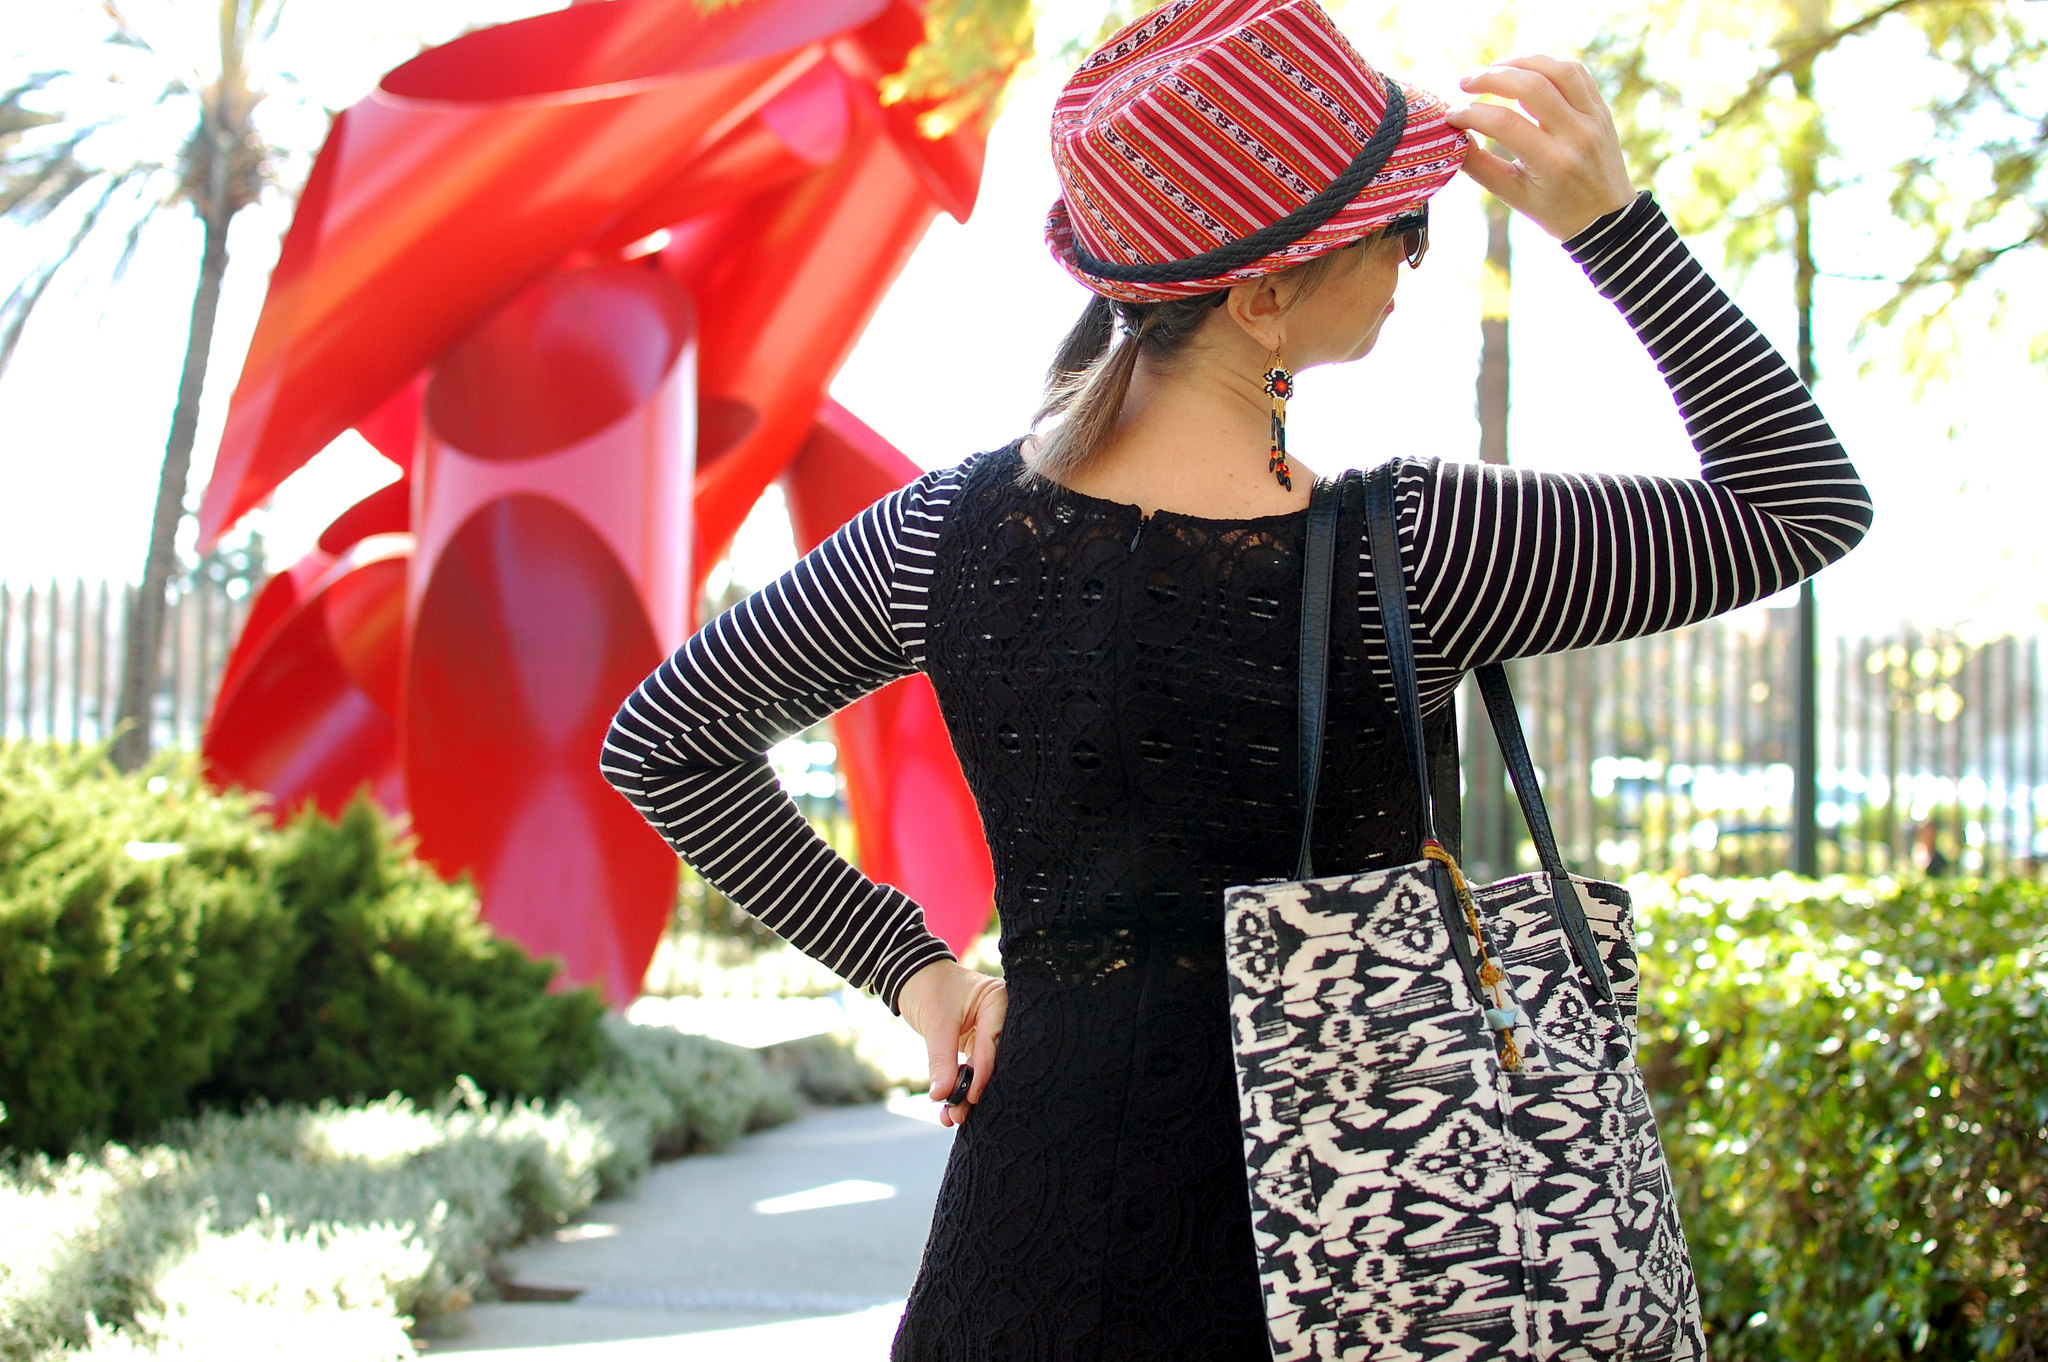 hat lacma la brea tar pit tourist ootd daily outfit blog whatiwore2day